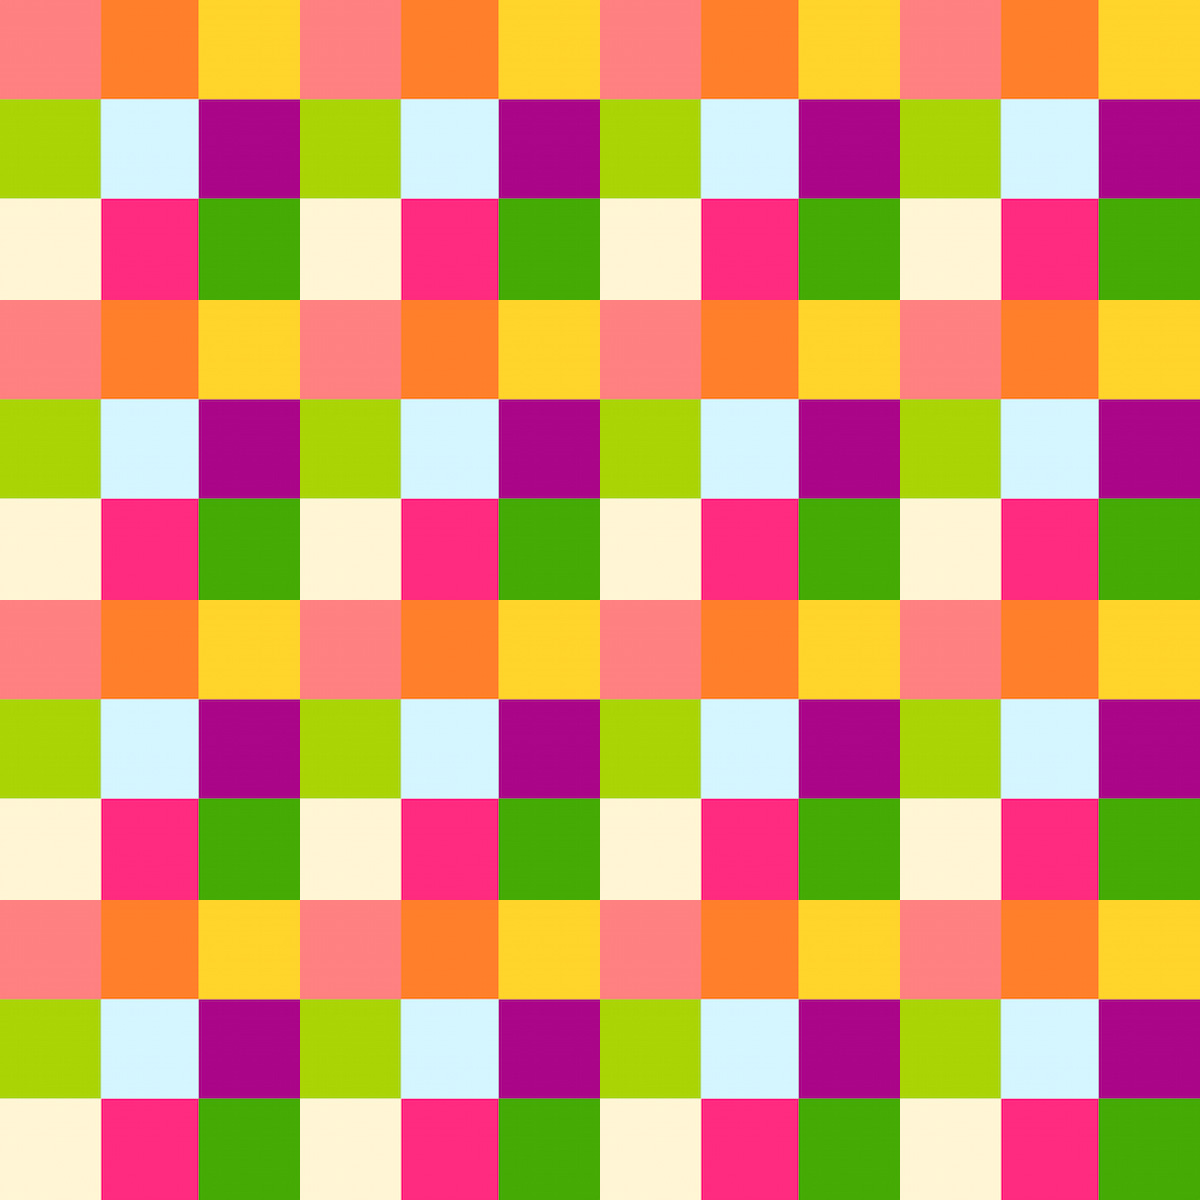 Colored Patterned Design Papers